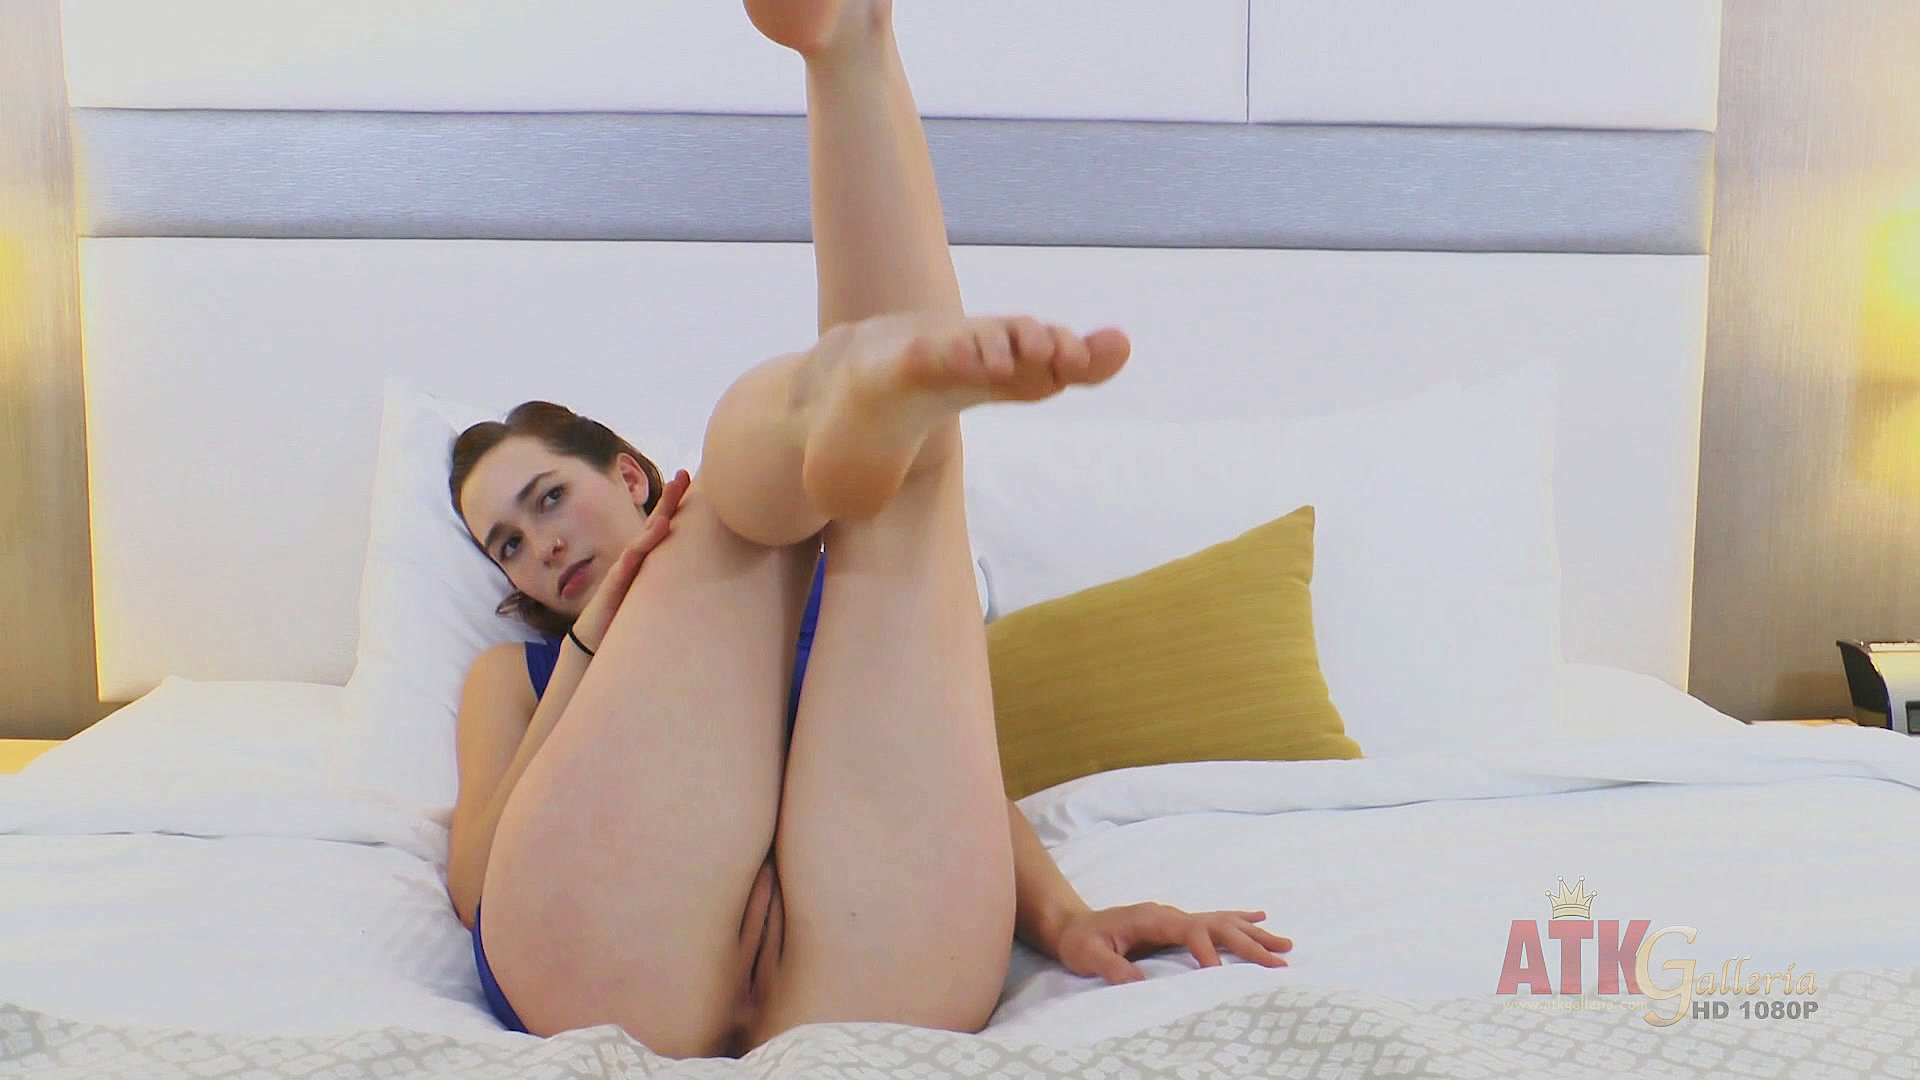 Alice Whyte Porn alice whyte knows how much you love feetatk hairy